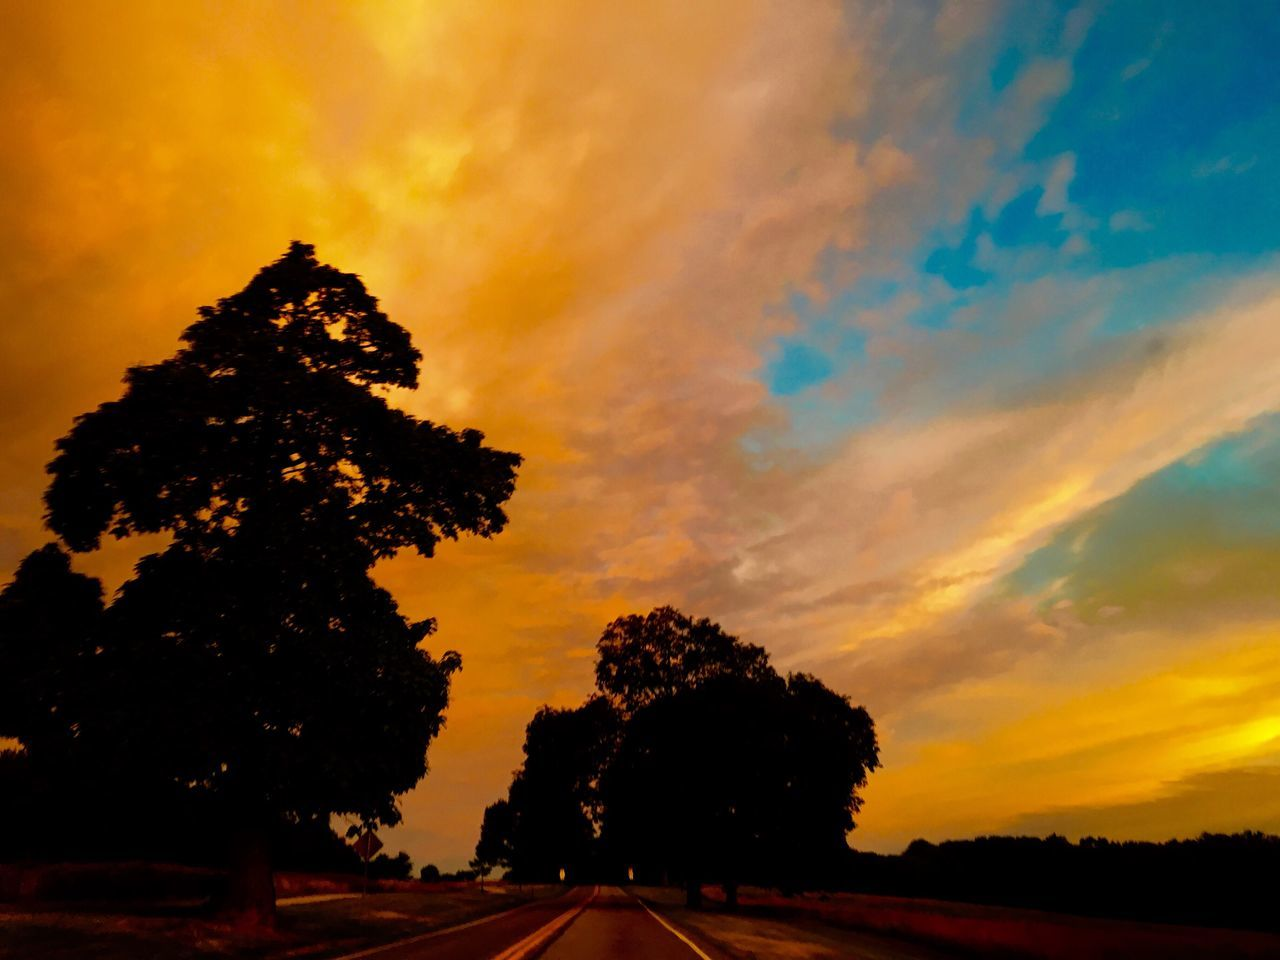 tree, sunset, silhouette, nature, sky, road, scenics, tranquility, no people, cloud - sky, beauty in nature, tranquil scene, the way forward, outdoors, landscape, day